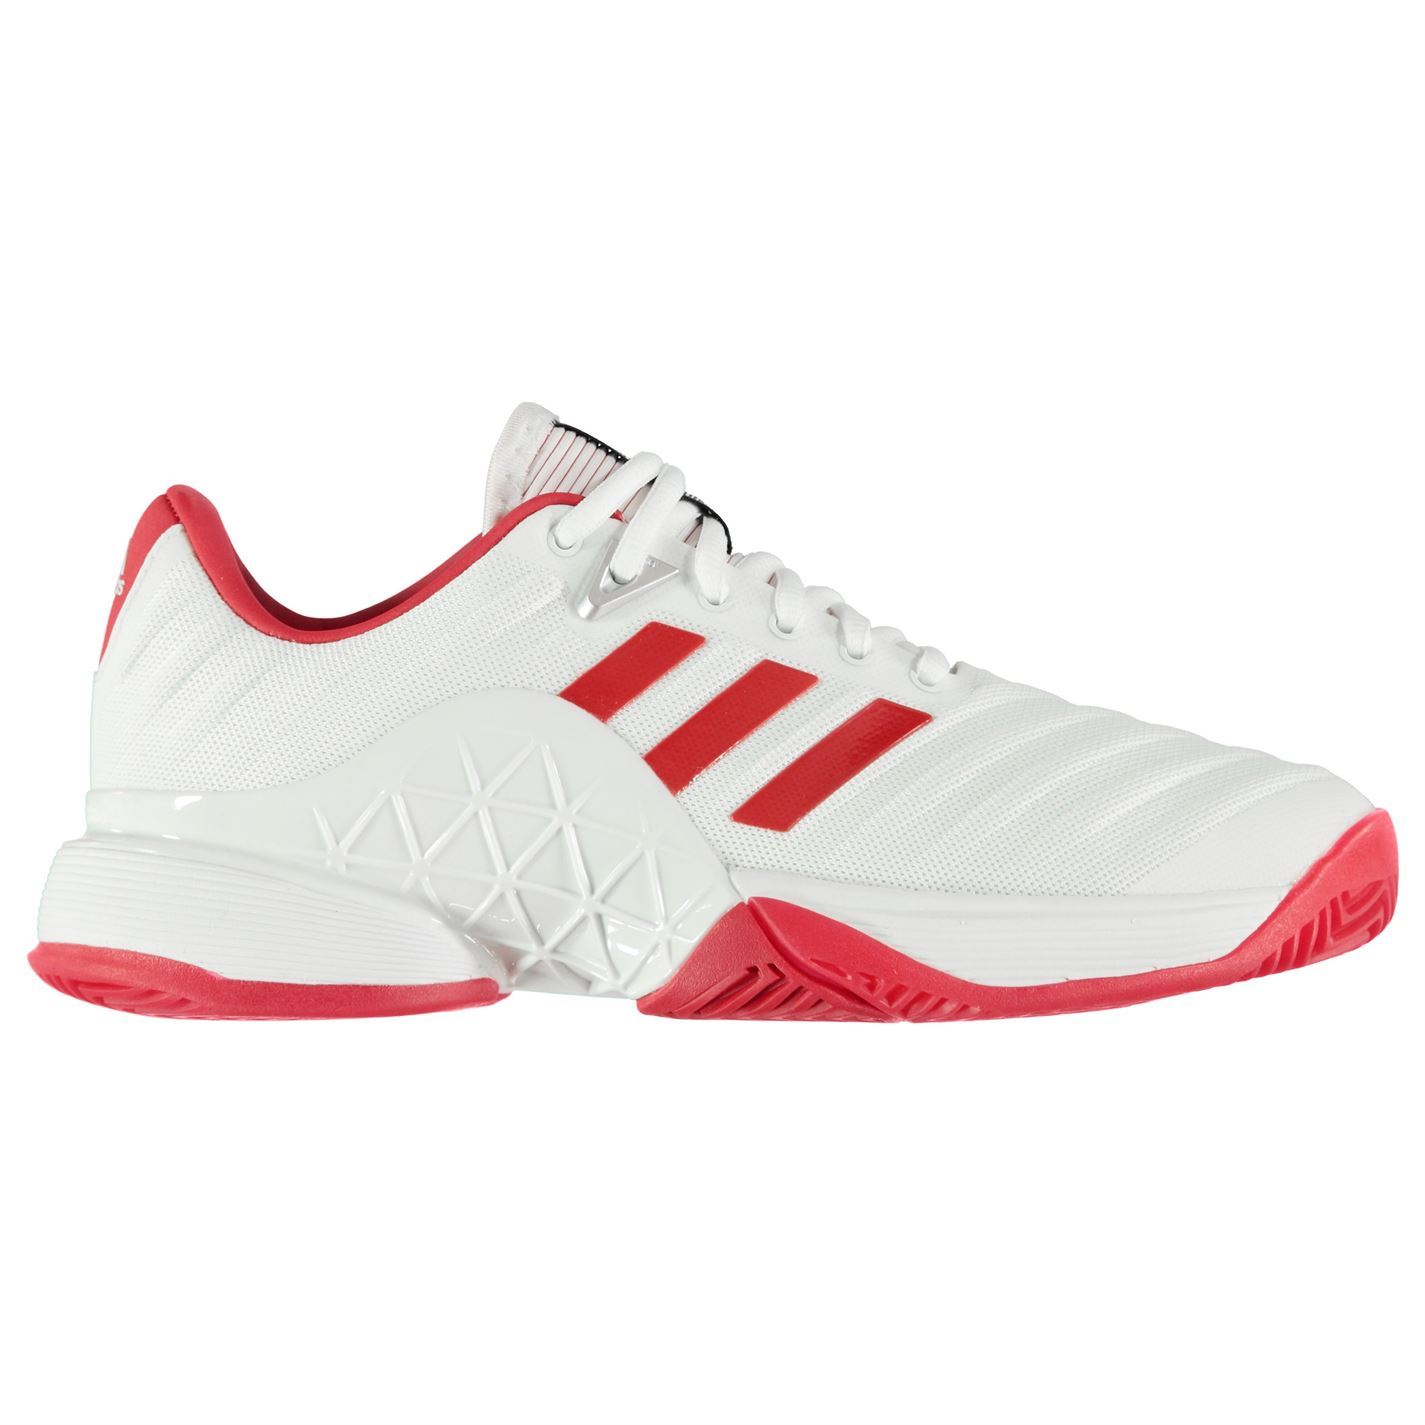 best authentic 222c3 95749 ... adidas Barricade 2018 Tennis Shoes Womens White Red Court Trainers  Sneakers ...